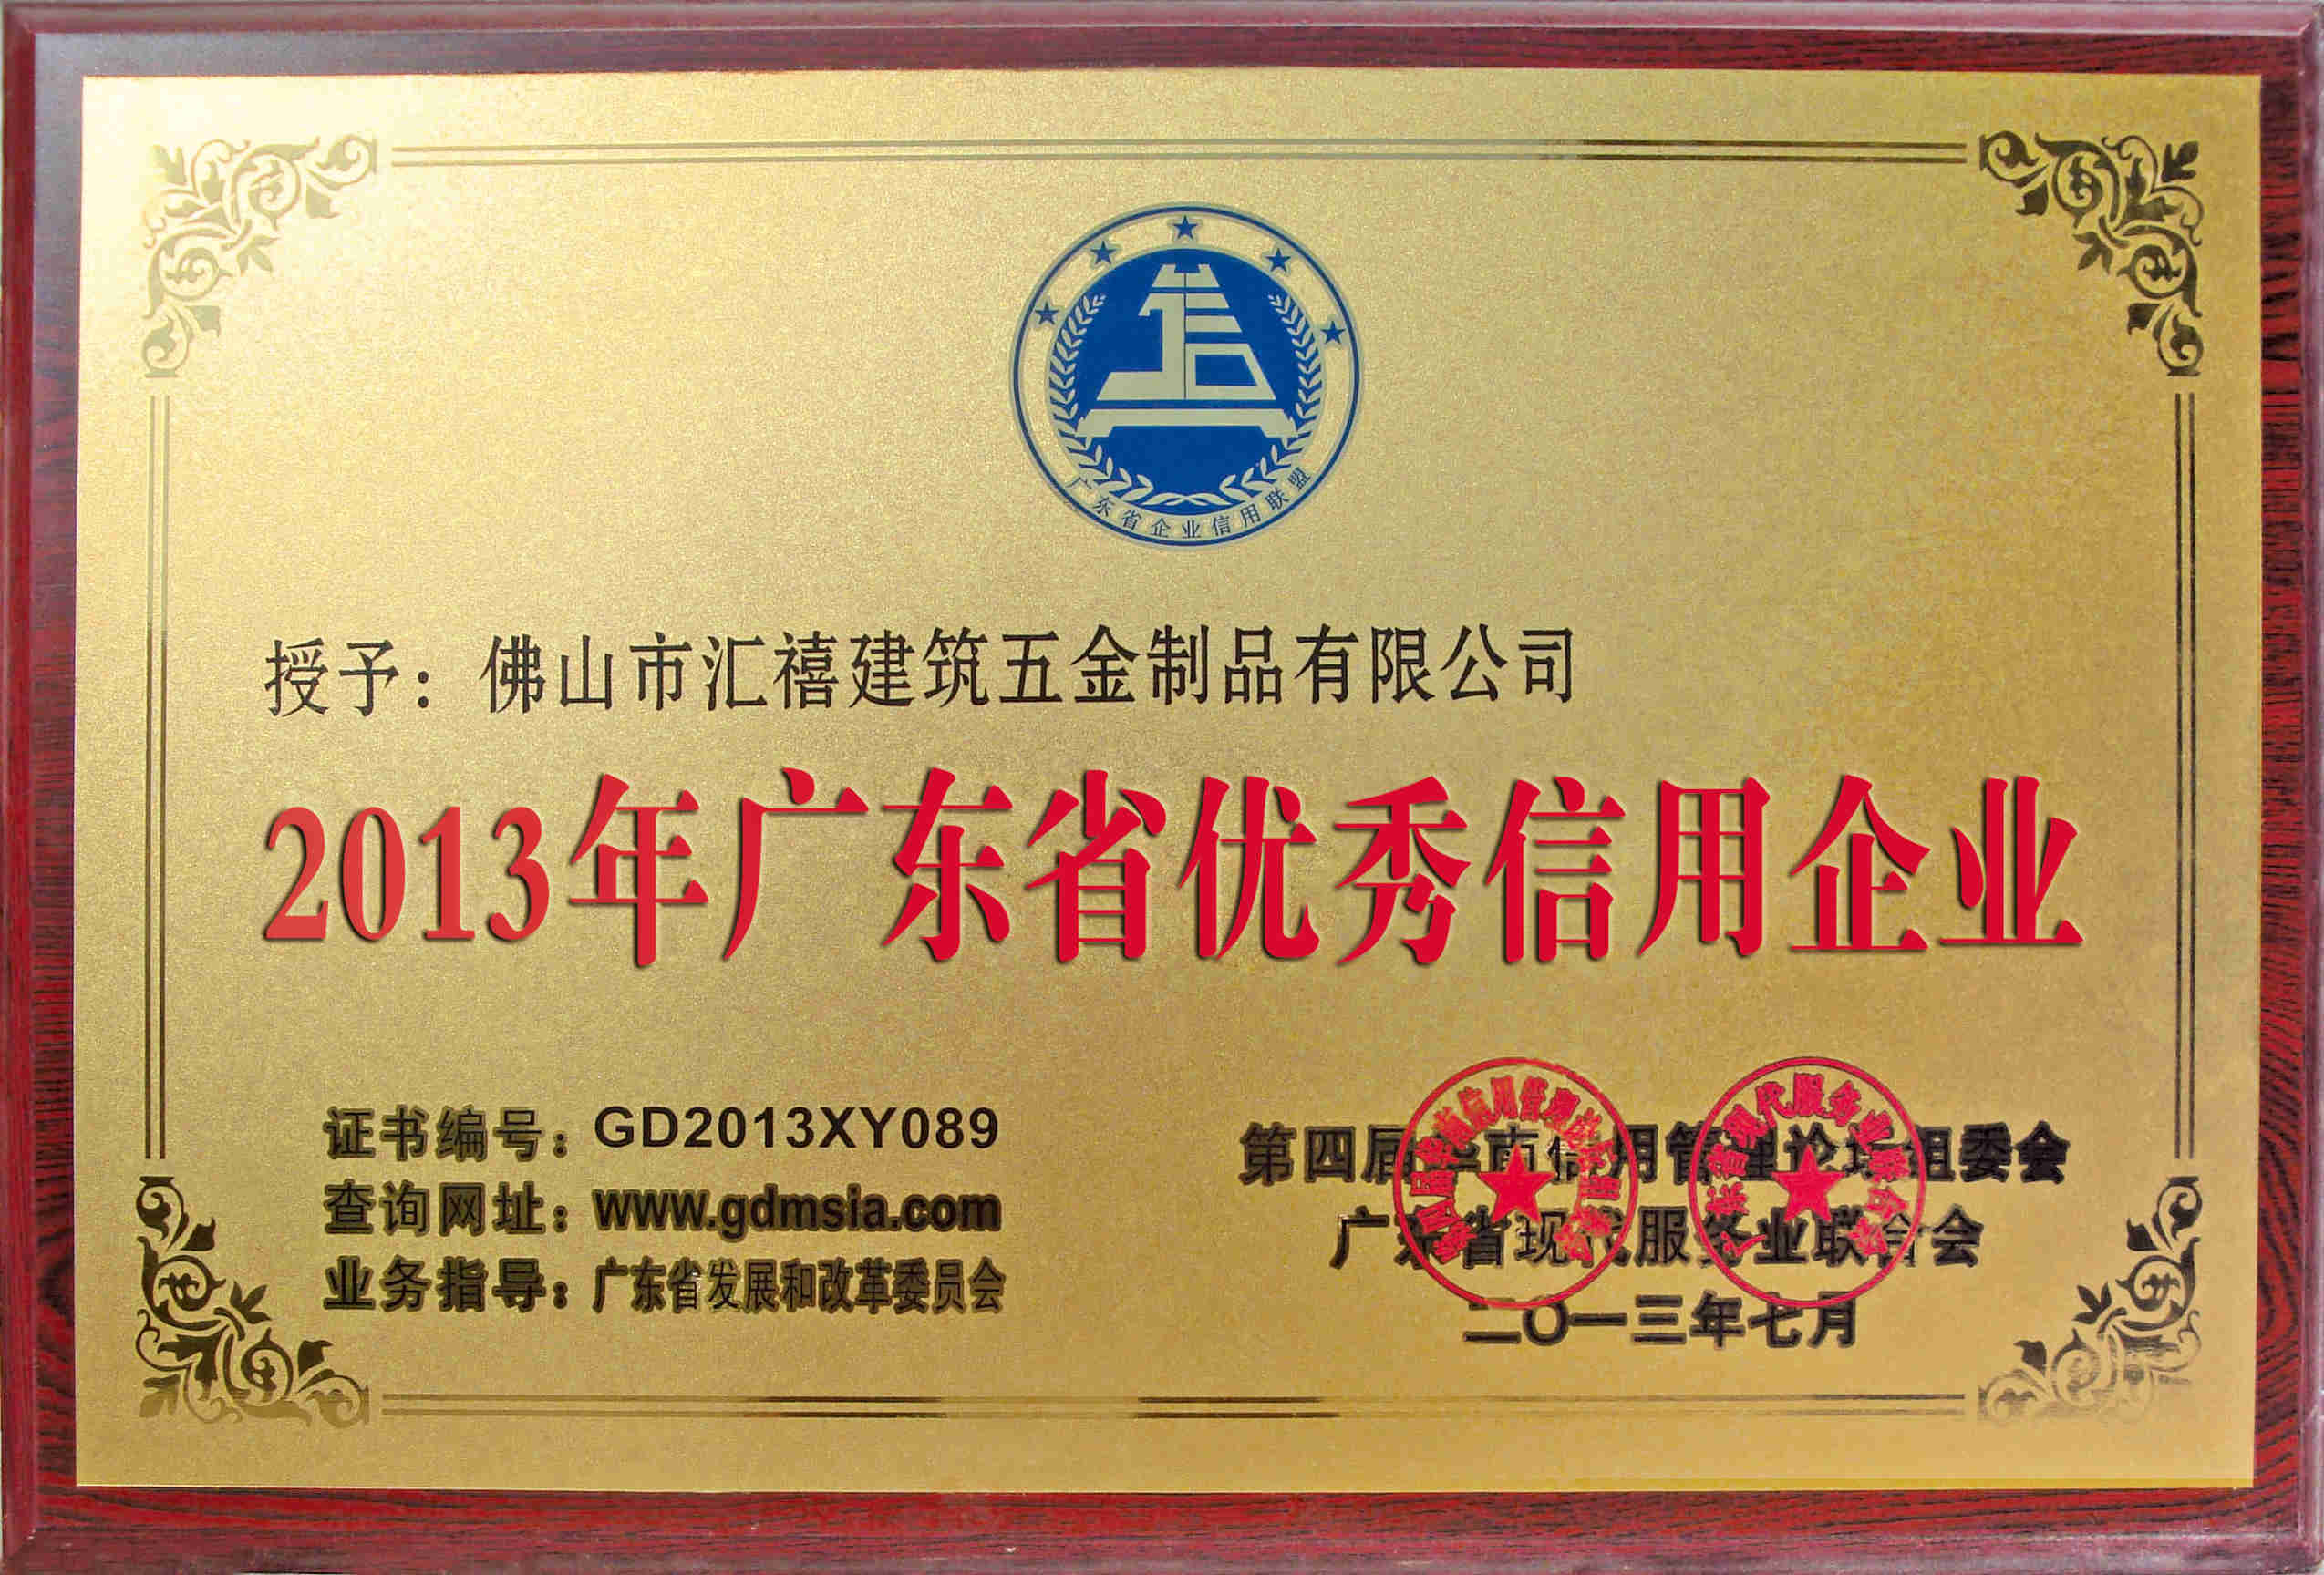 2013 Guangdong High-Integrity Enterprise